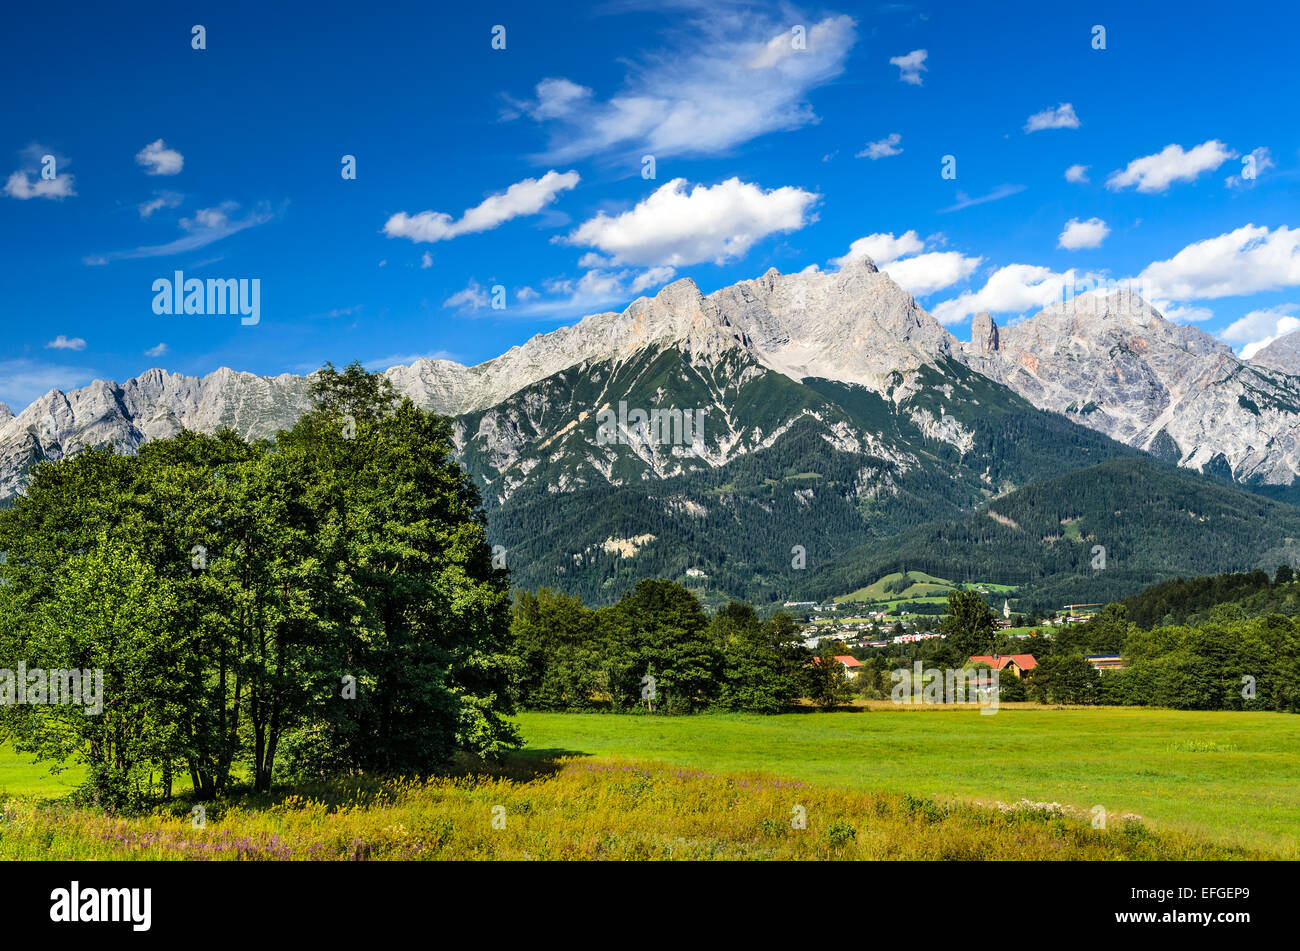 Austria. Berchtesgaden Alps range scenery with Saalfelden am Steinernen Meer small city, mountaineering attraction Stock Photo